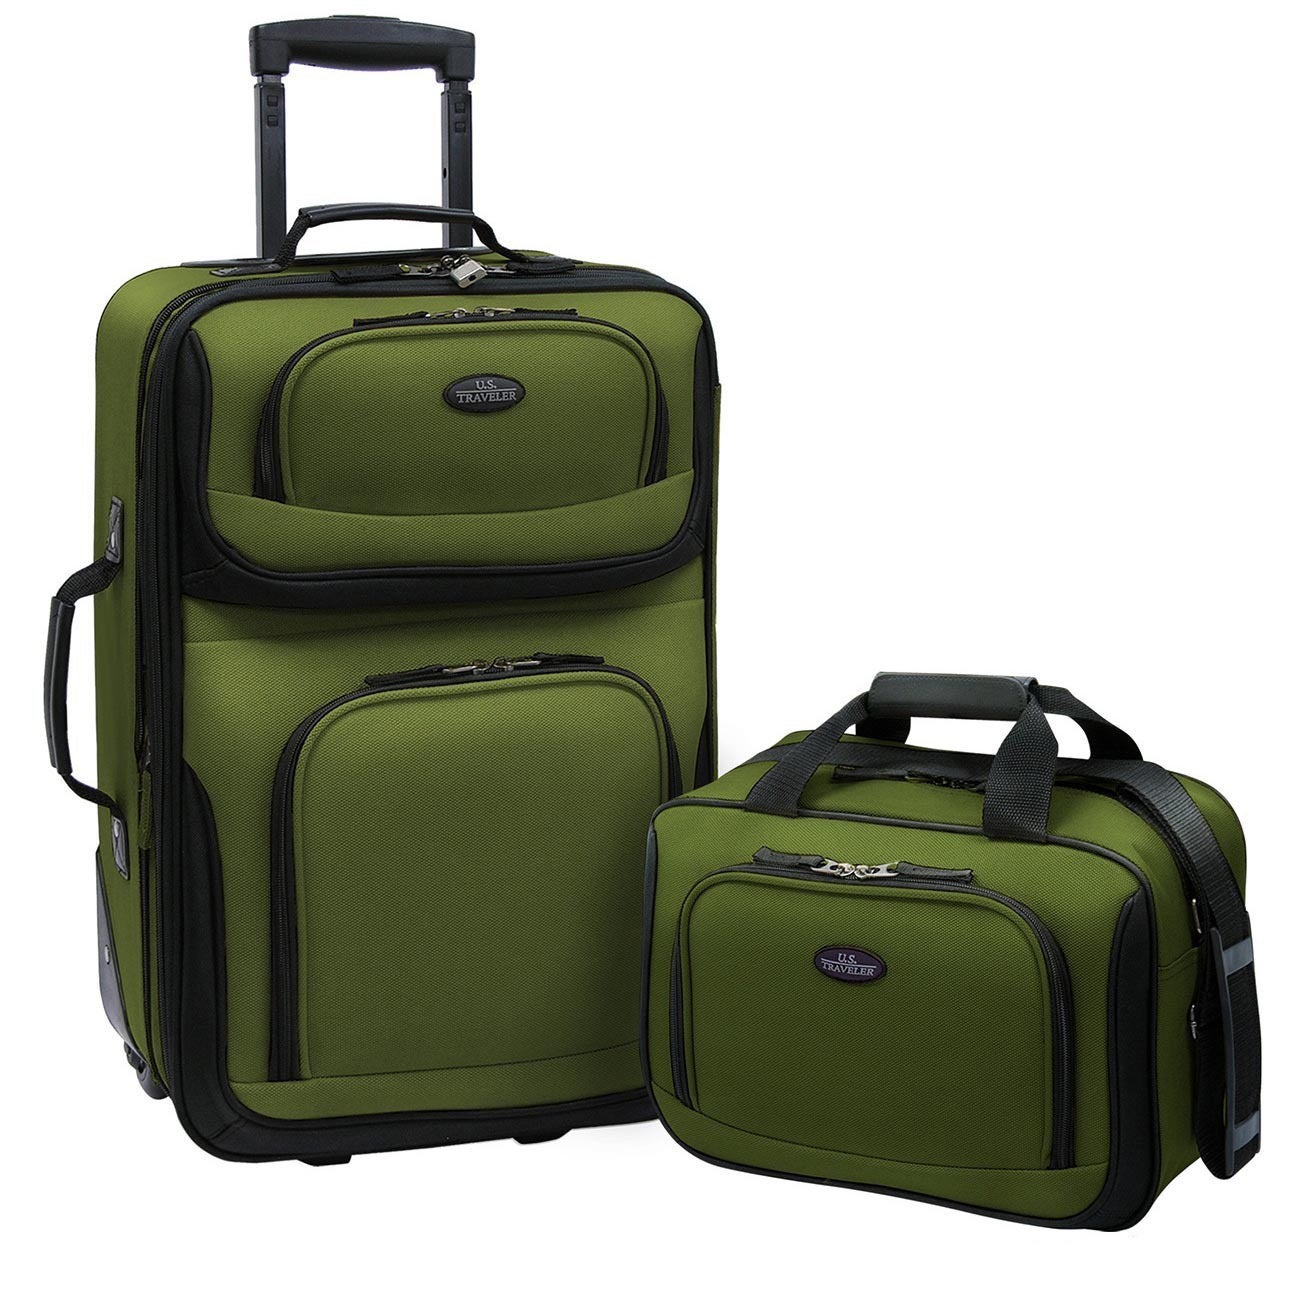 Luggage by O U.S. Traveler US5600 RIO 2-piece Expandable Carry-on Luggage Set at Sears.com